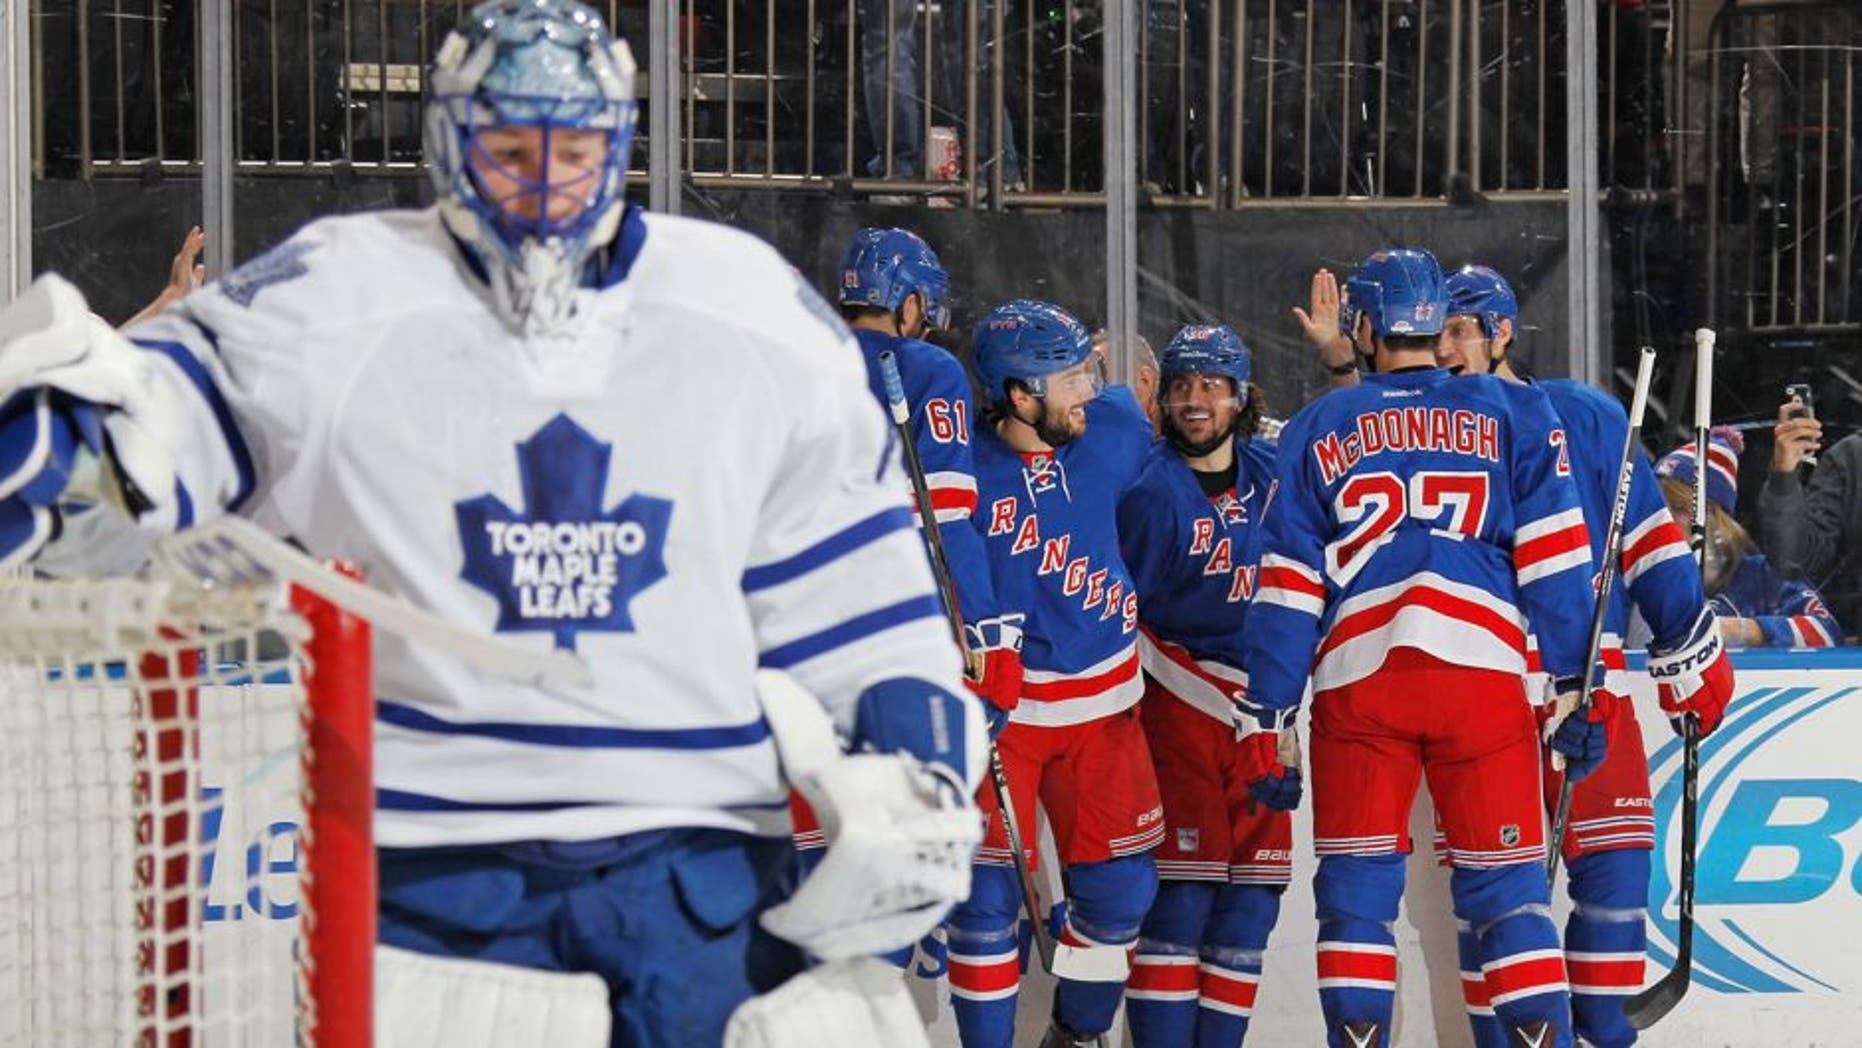 NEW YORK, NY - NOVEMBER 15: Mats Zuccarello #36, Derick Brassard #16, Rick Nash #61, Ryan McDonagh #27 and Dan Girardi #5 of the New York Rangers celebrate after scoring in the third period against Jonathan Bernier #45 of the Toronto Maple Leafs at Madison Square Garden on November 15, 2015 in New York City. (Photo by Jared Silber/NHLI via Getty Images)